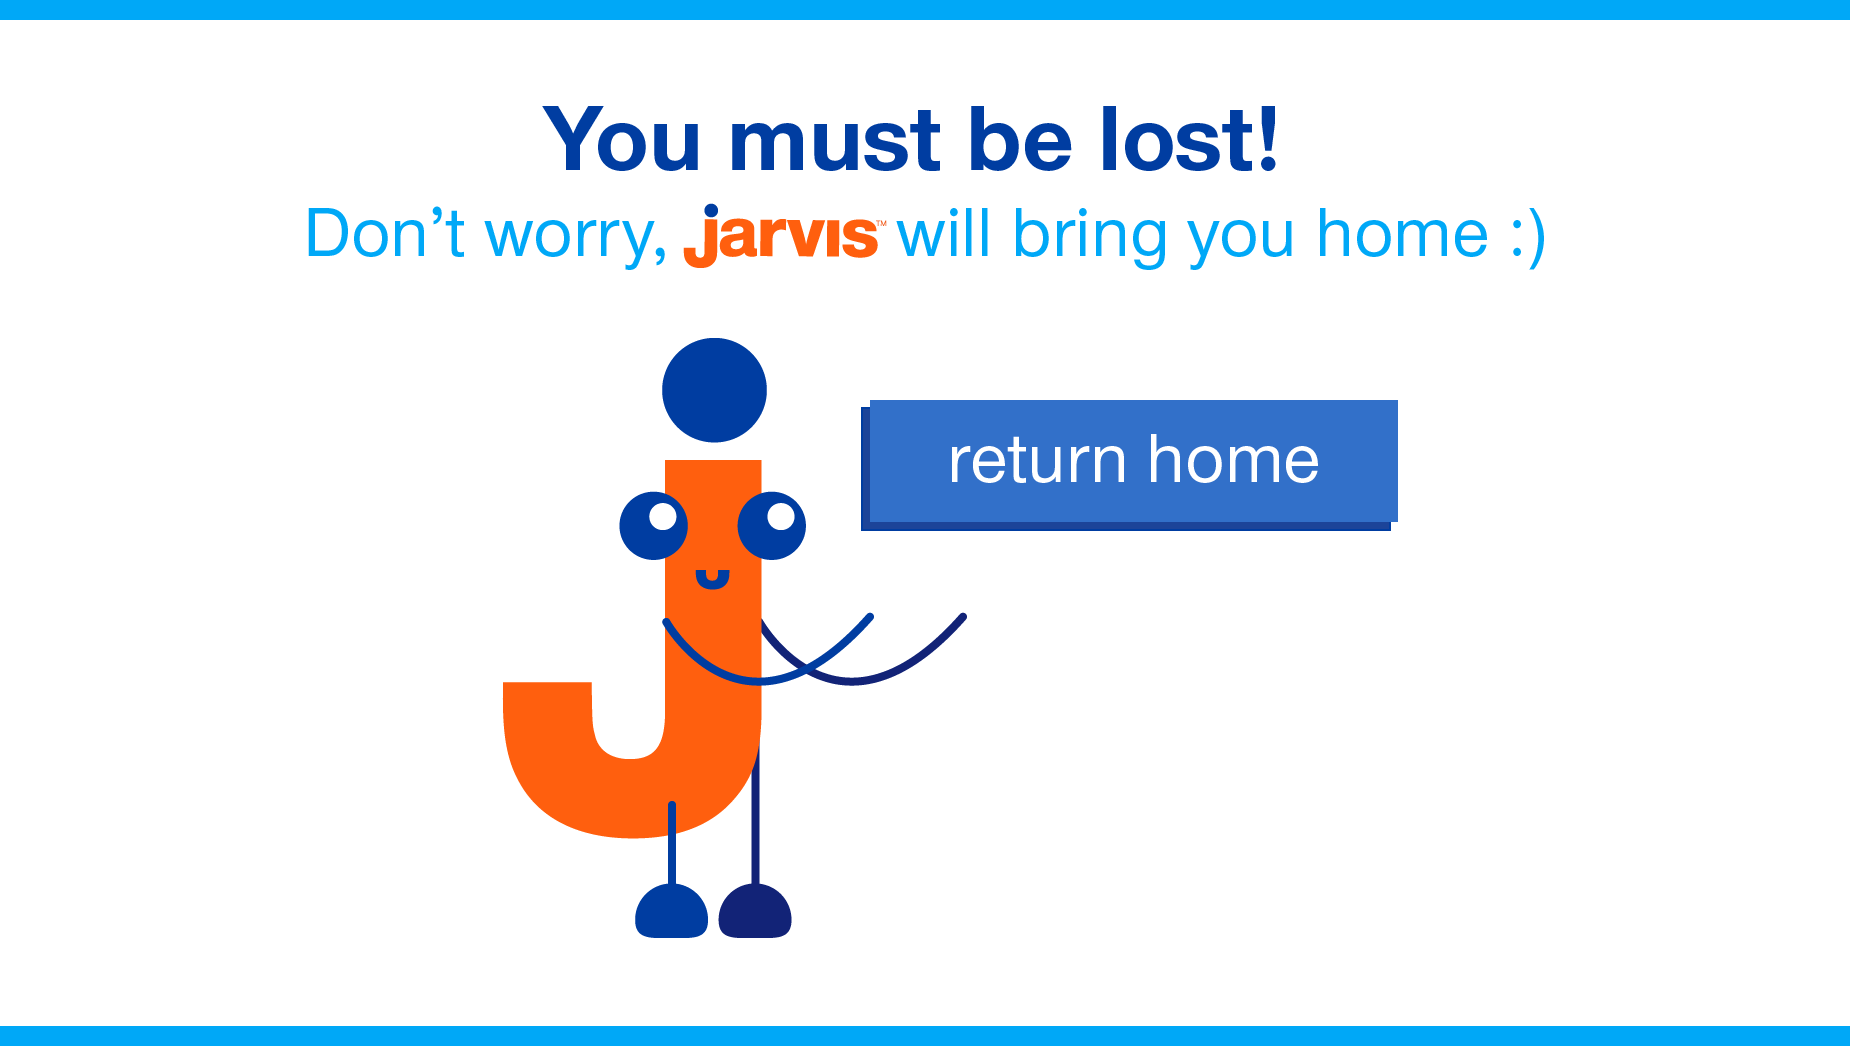 You must be lost! Don't worry, jarvis will bring you home.